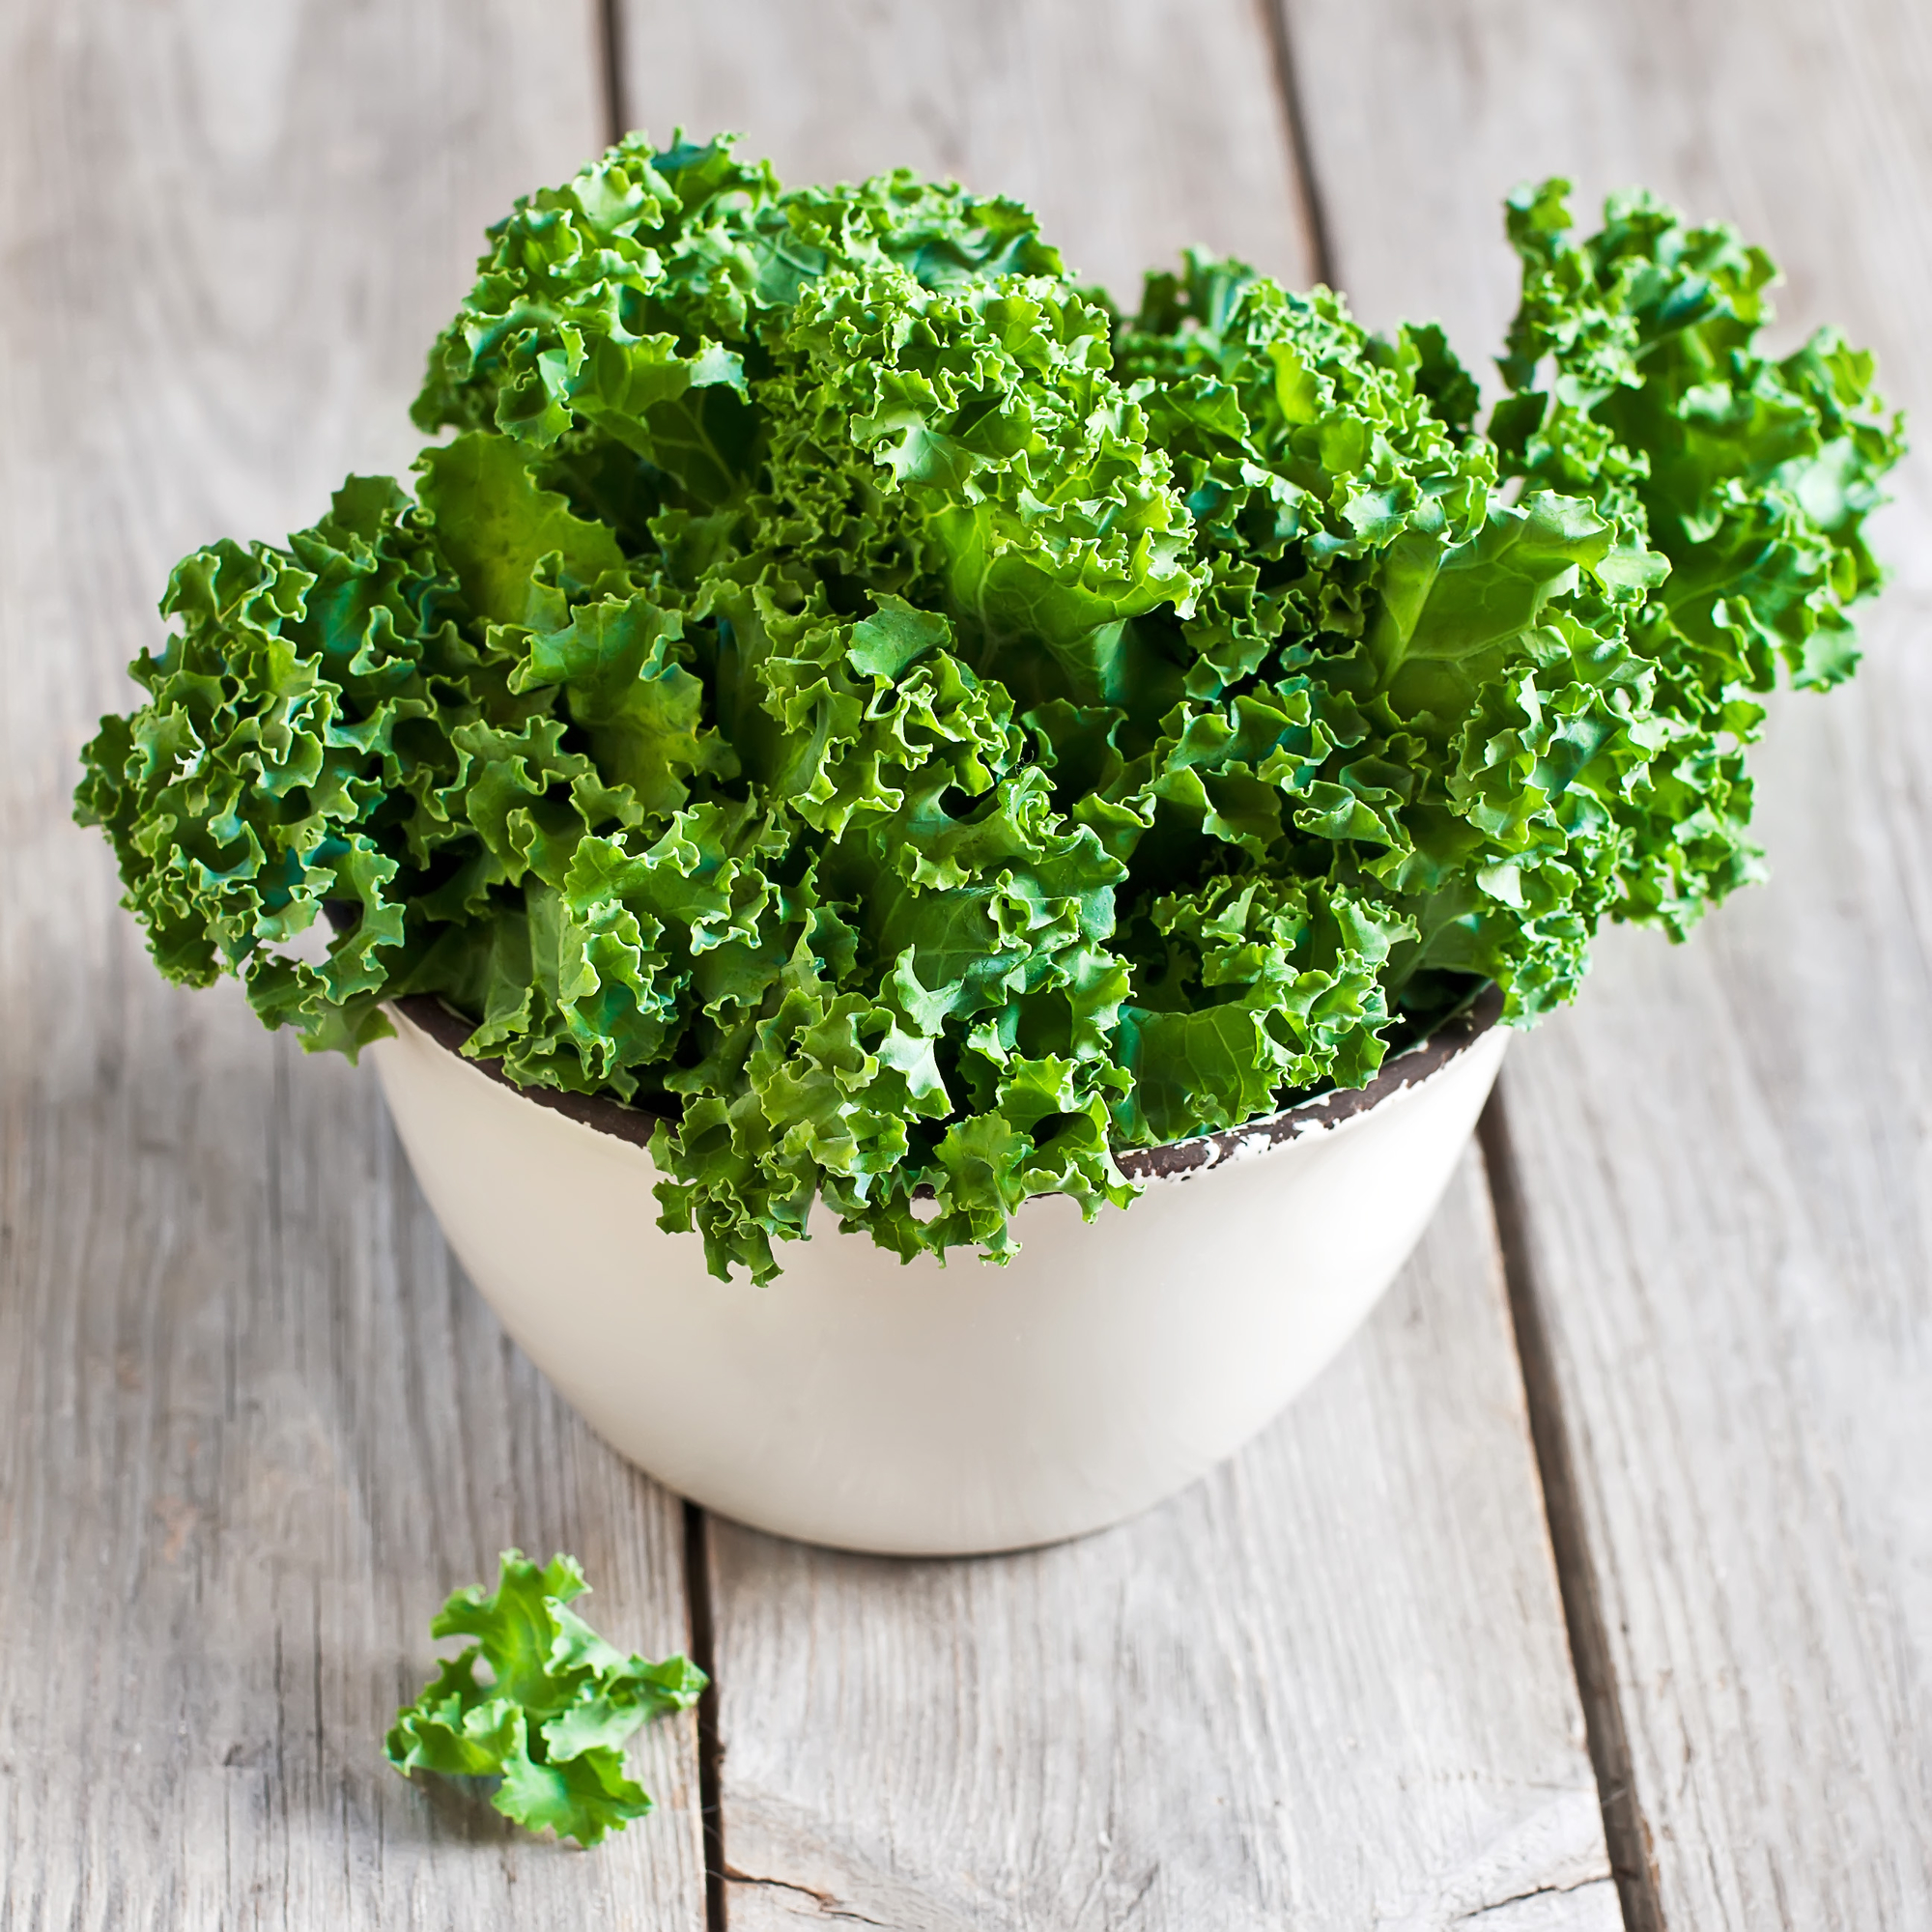 Kale bowl - What Is The Best Magnesium For Anxiety?